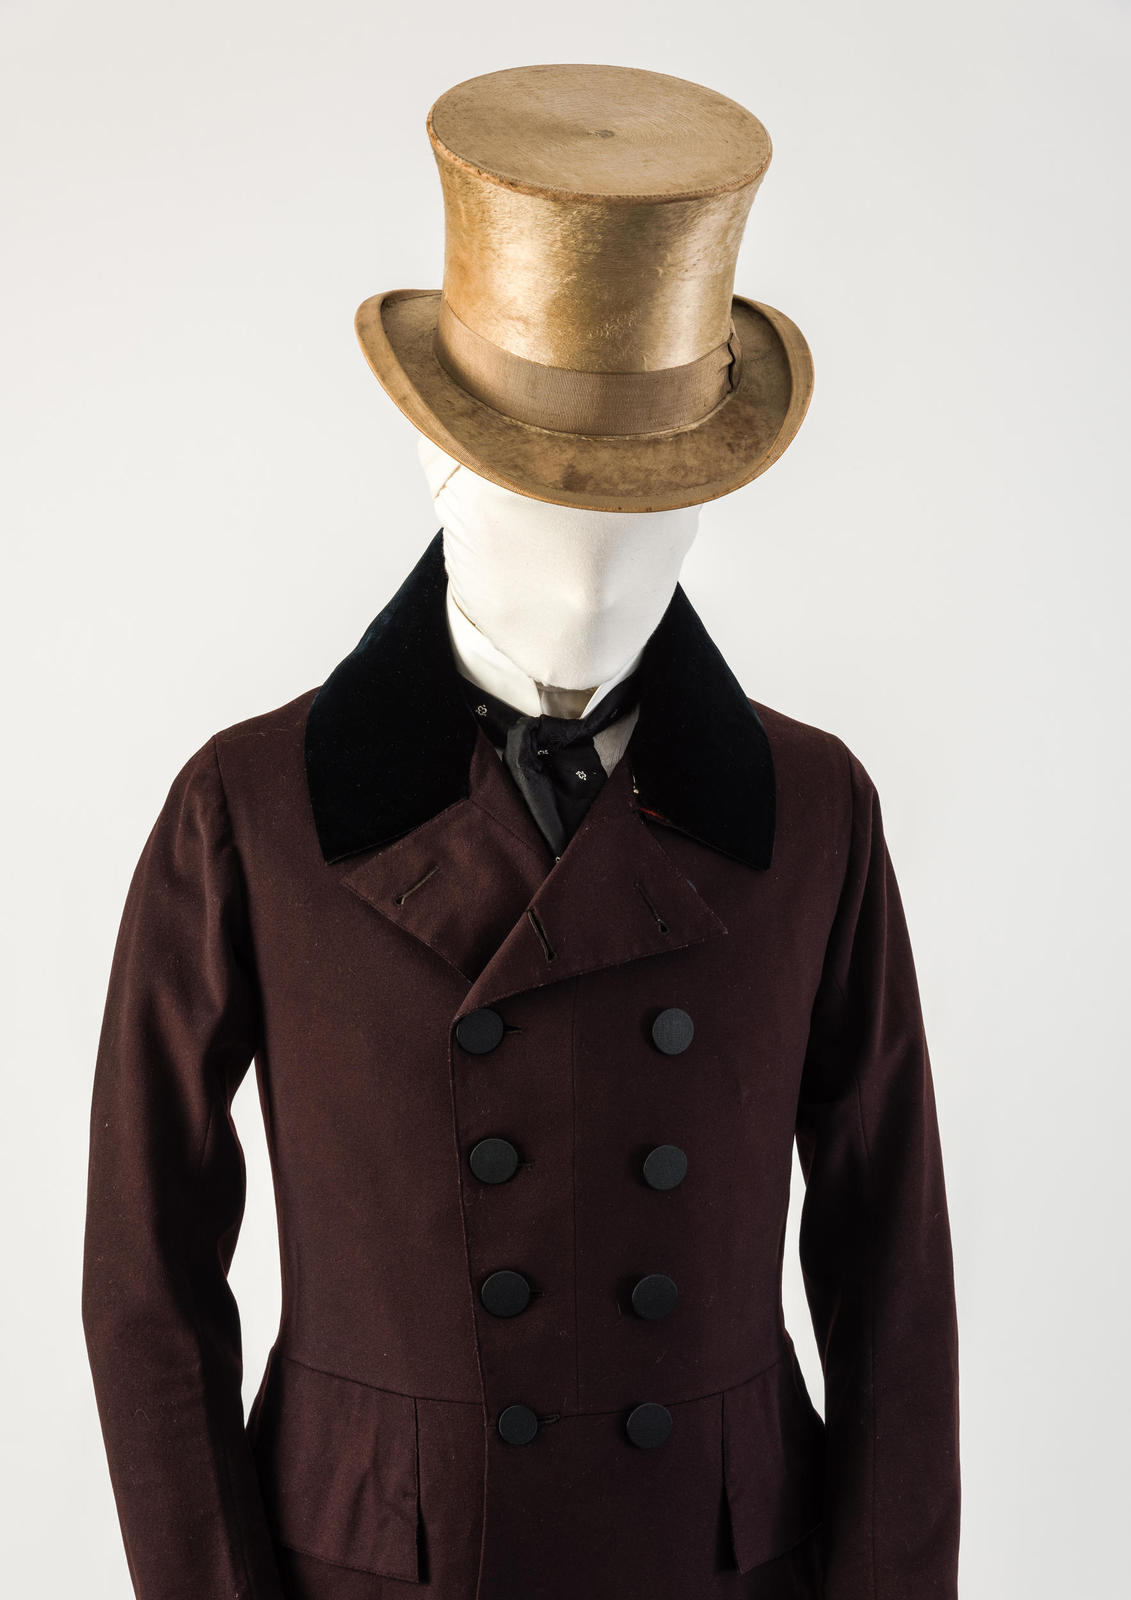 A History Of Fashion In 100 Objects Gallery The Fashion